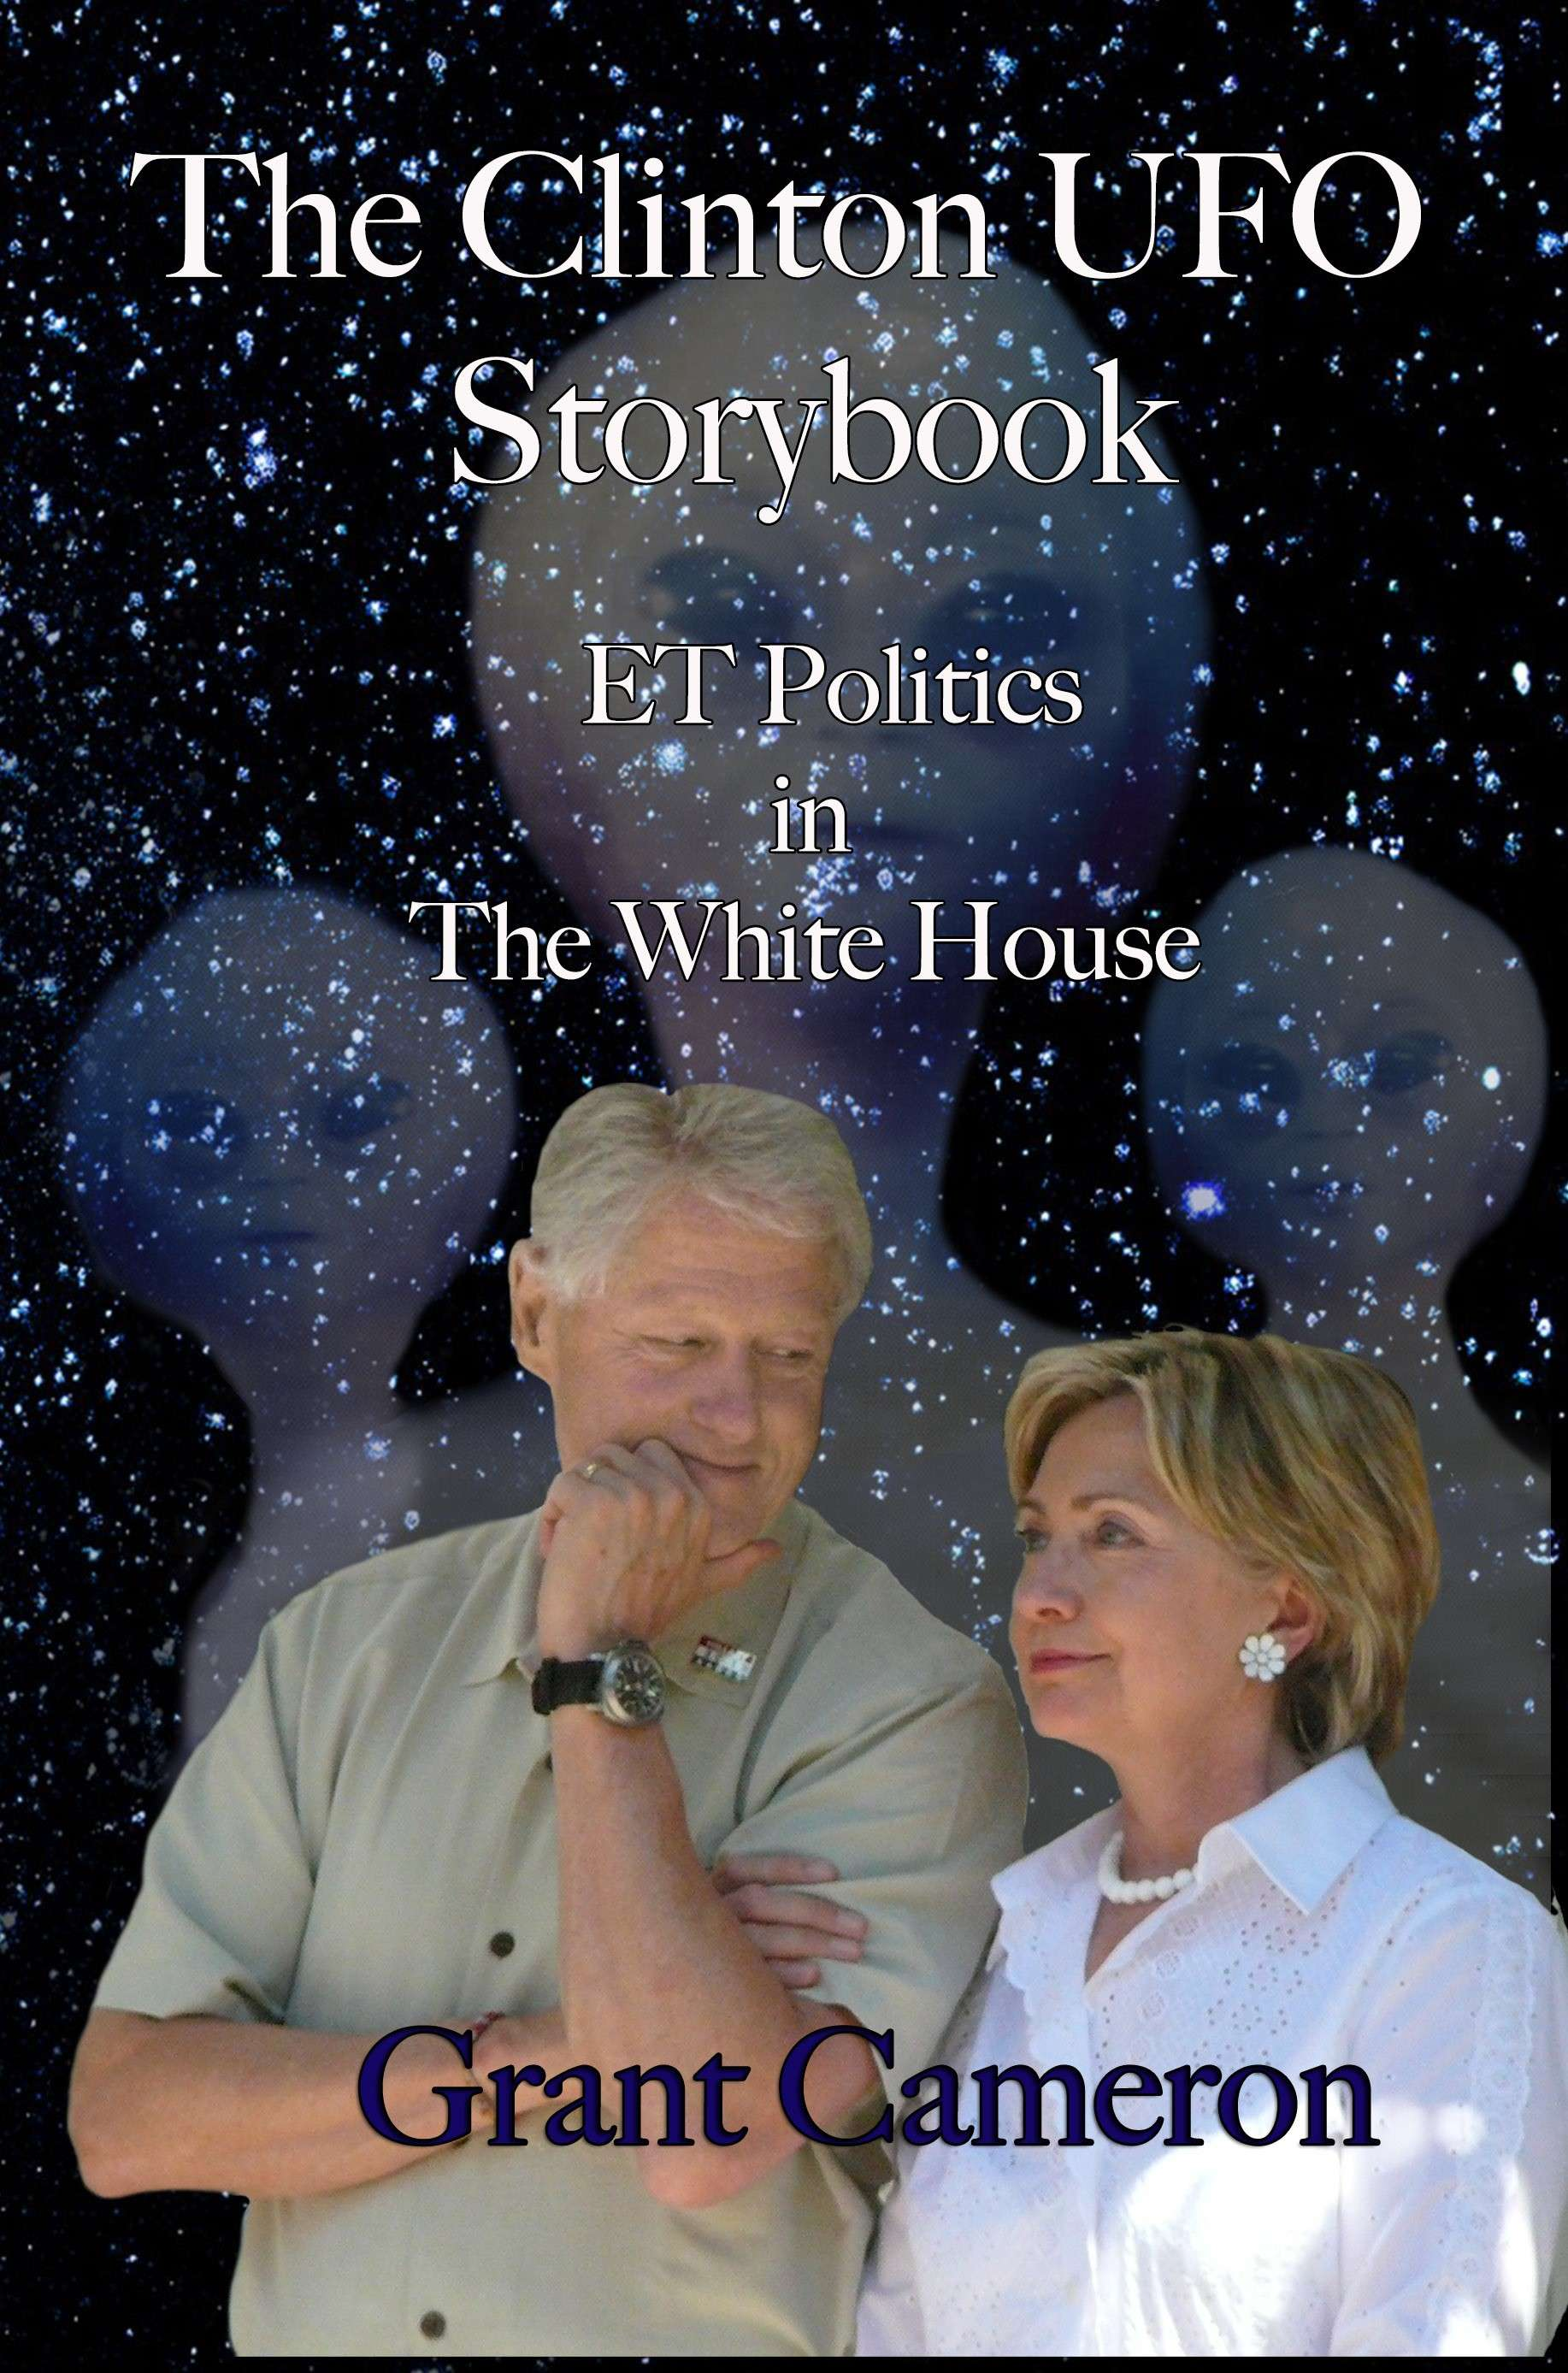 Clinton UFO Storybook | White House Secret on ETs and UFOs with Grant Cameron - Powered by Inception Radio Network